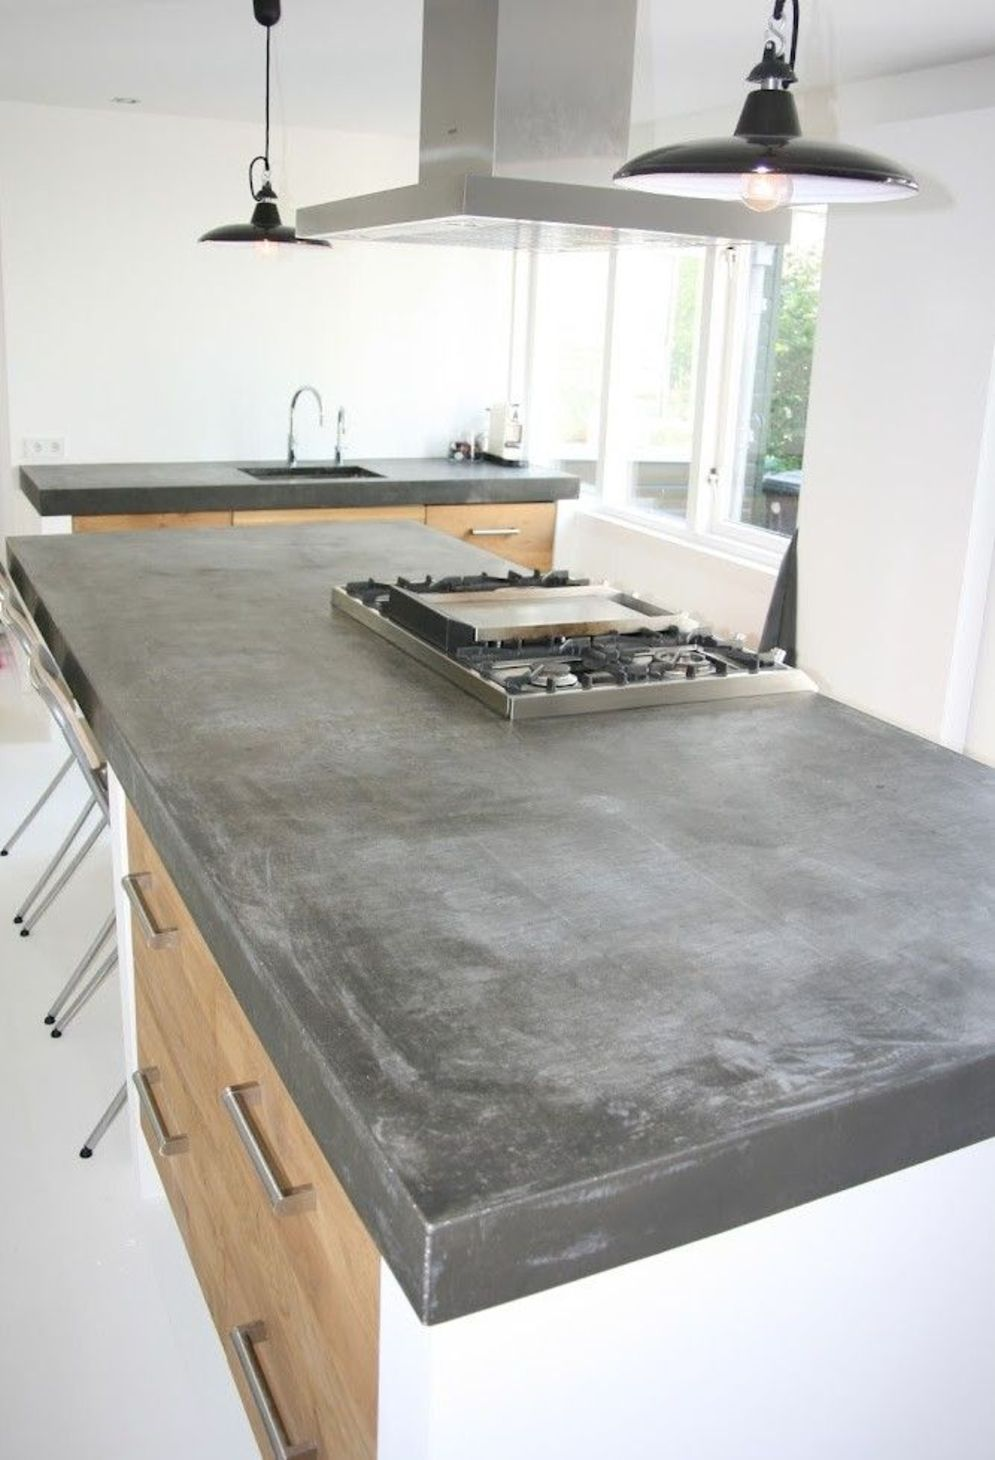 Classy kitchen styles in bold display maximizing concrete benchtop designs Image 17